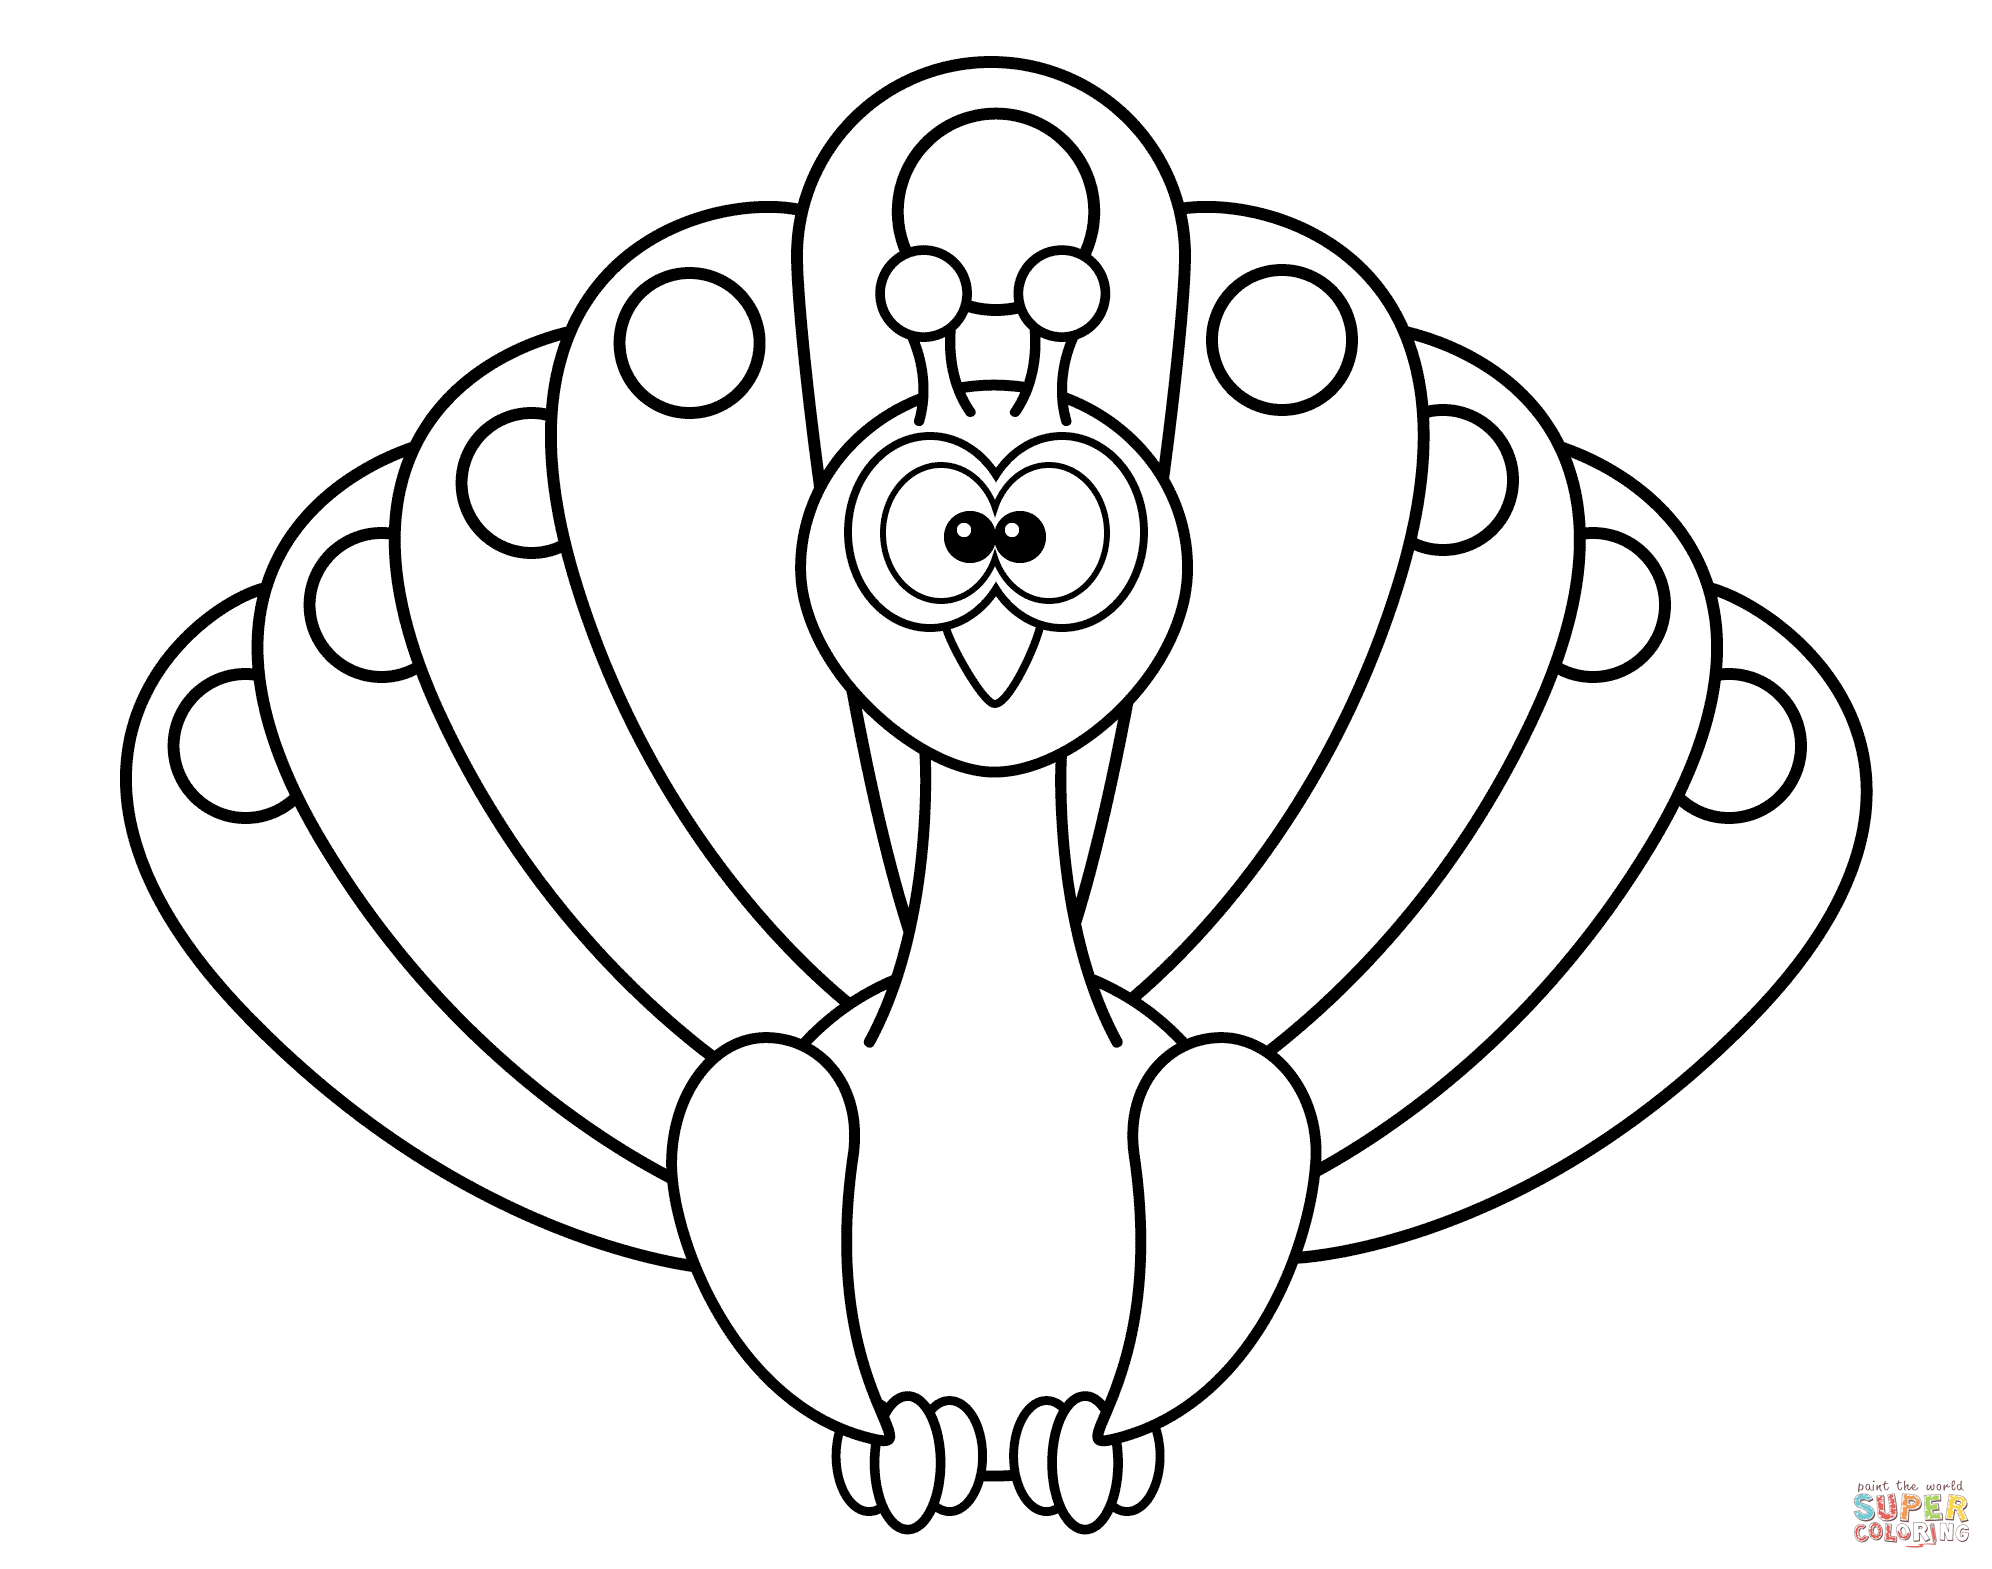 easy cute peacock coloring pages peacocks for children peacocks kids coloring pages cute coloring pages peacock easy